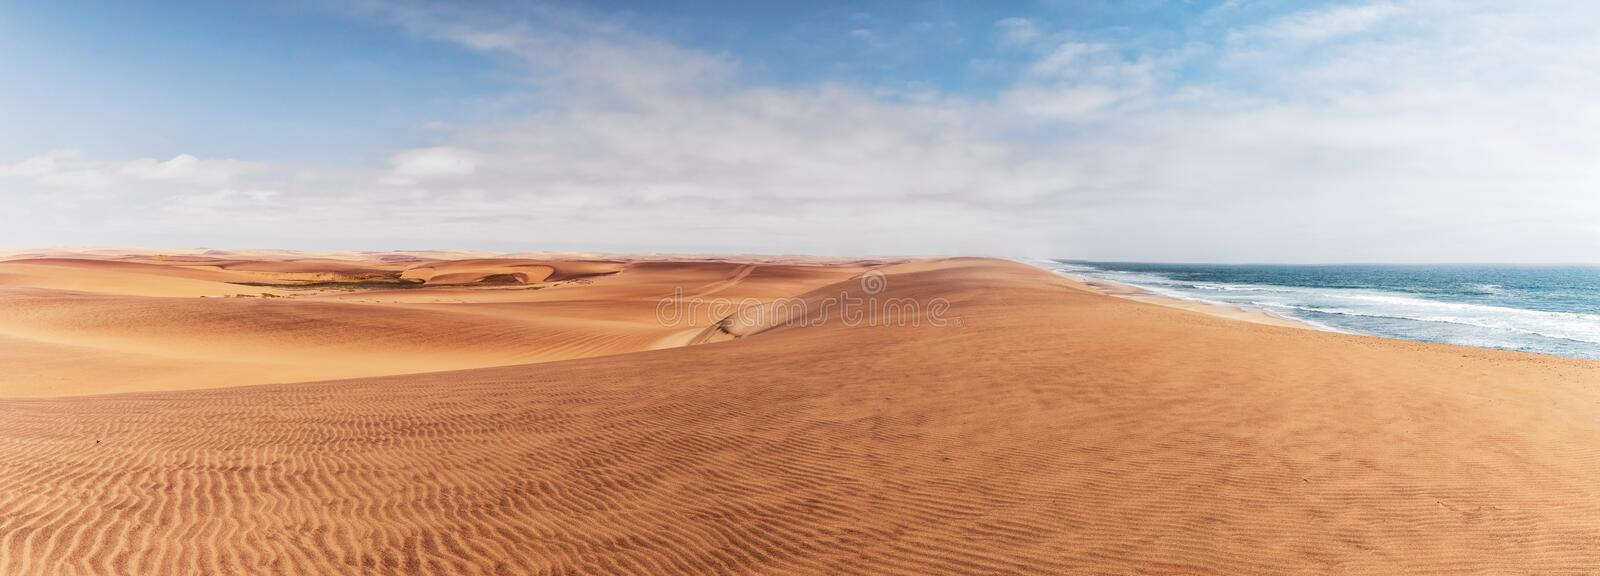 Panoramic Photograph of dunes and ocean on Namibe desert. Africa. Angola. Africa royalty free stock photography